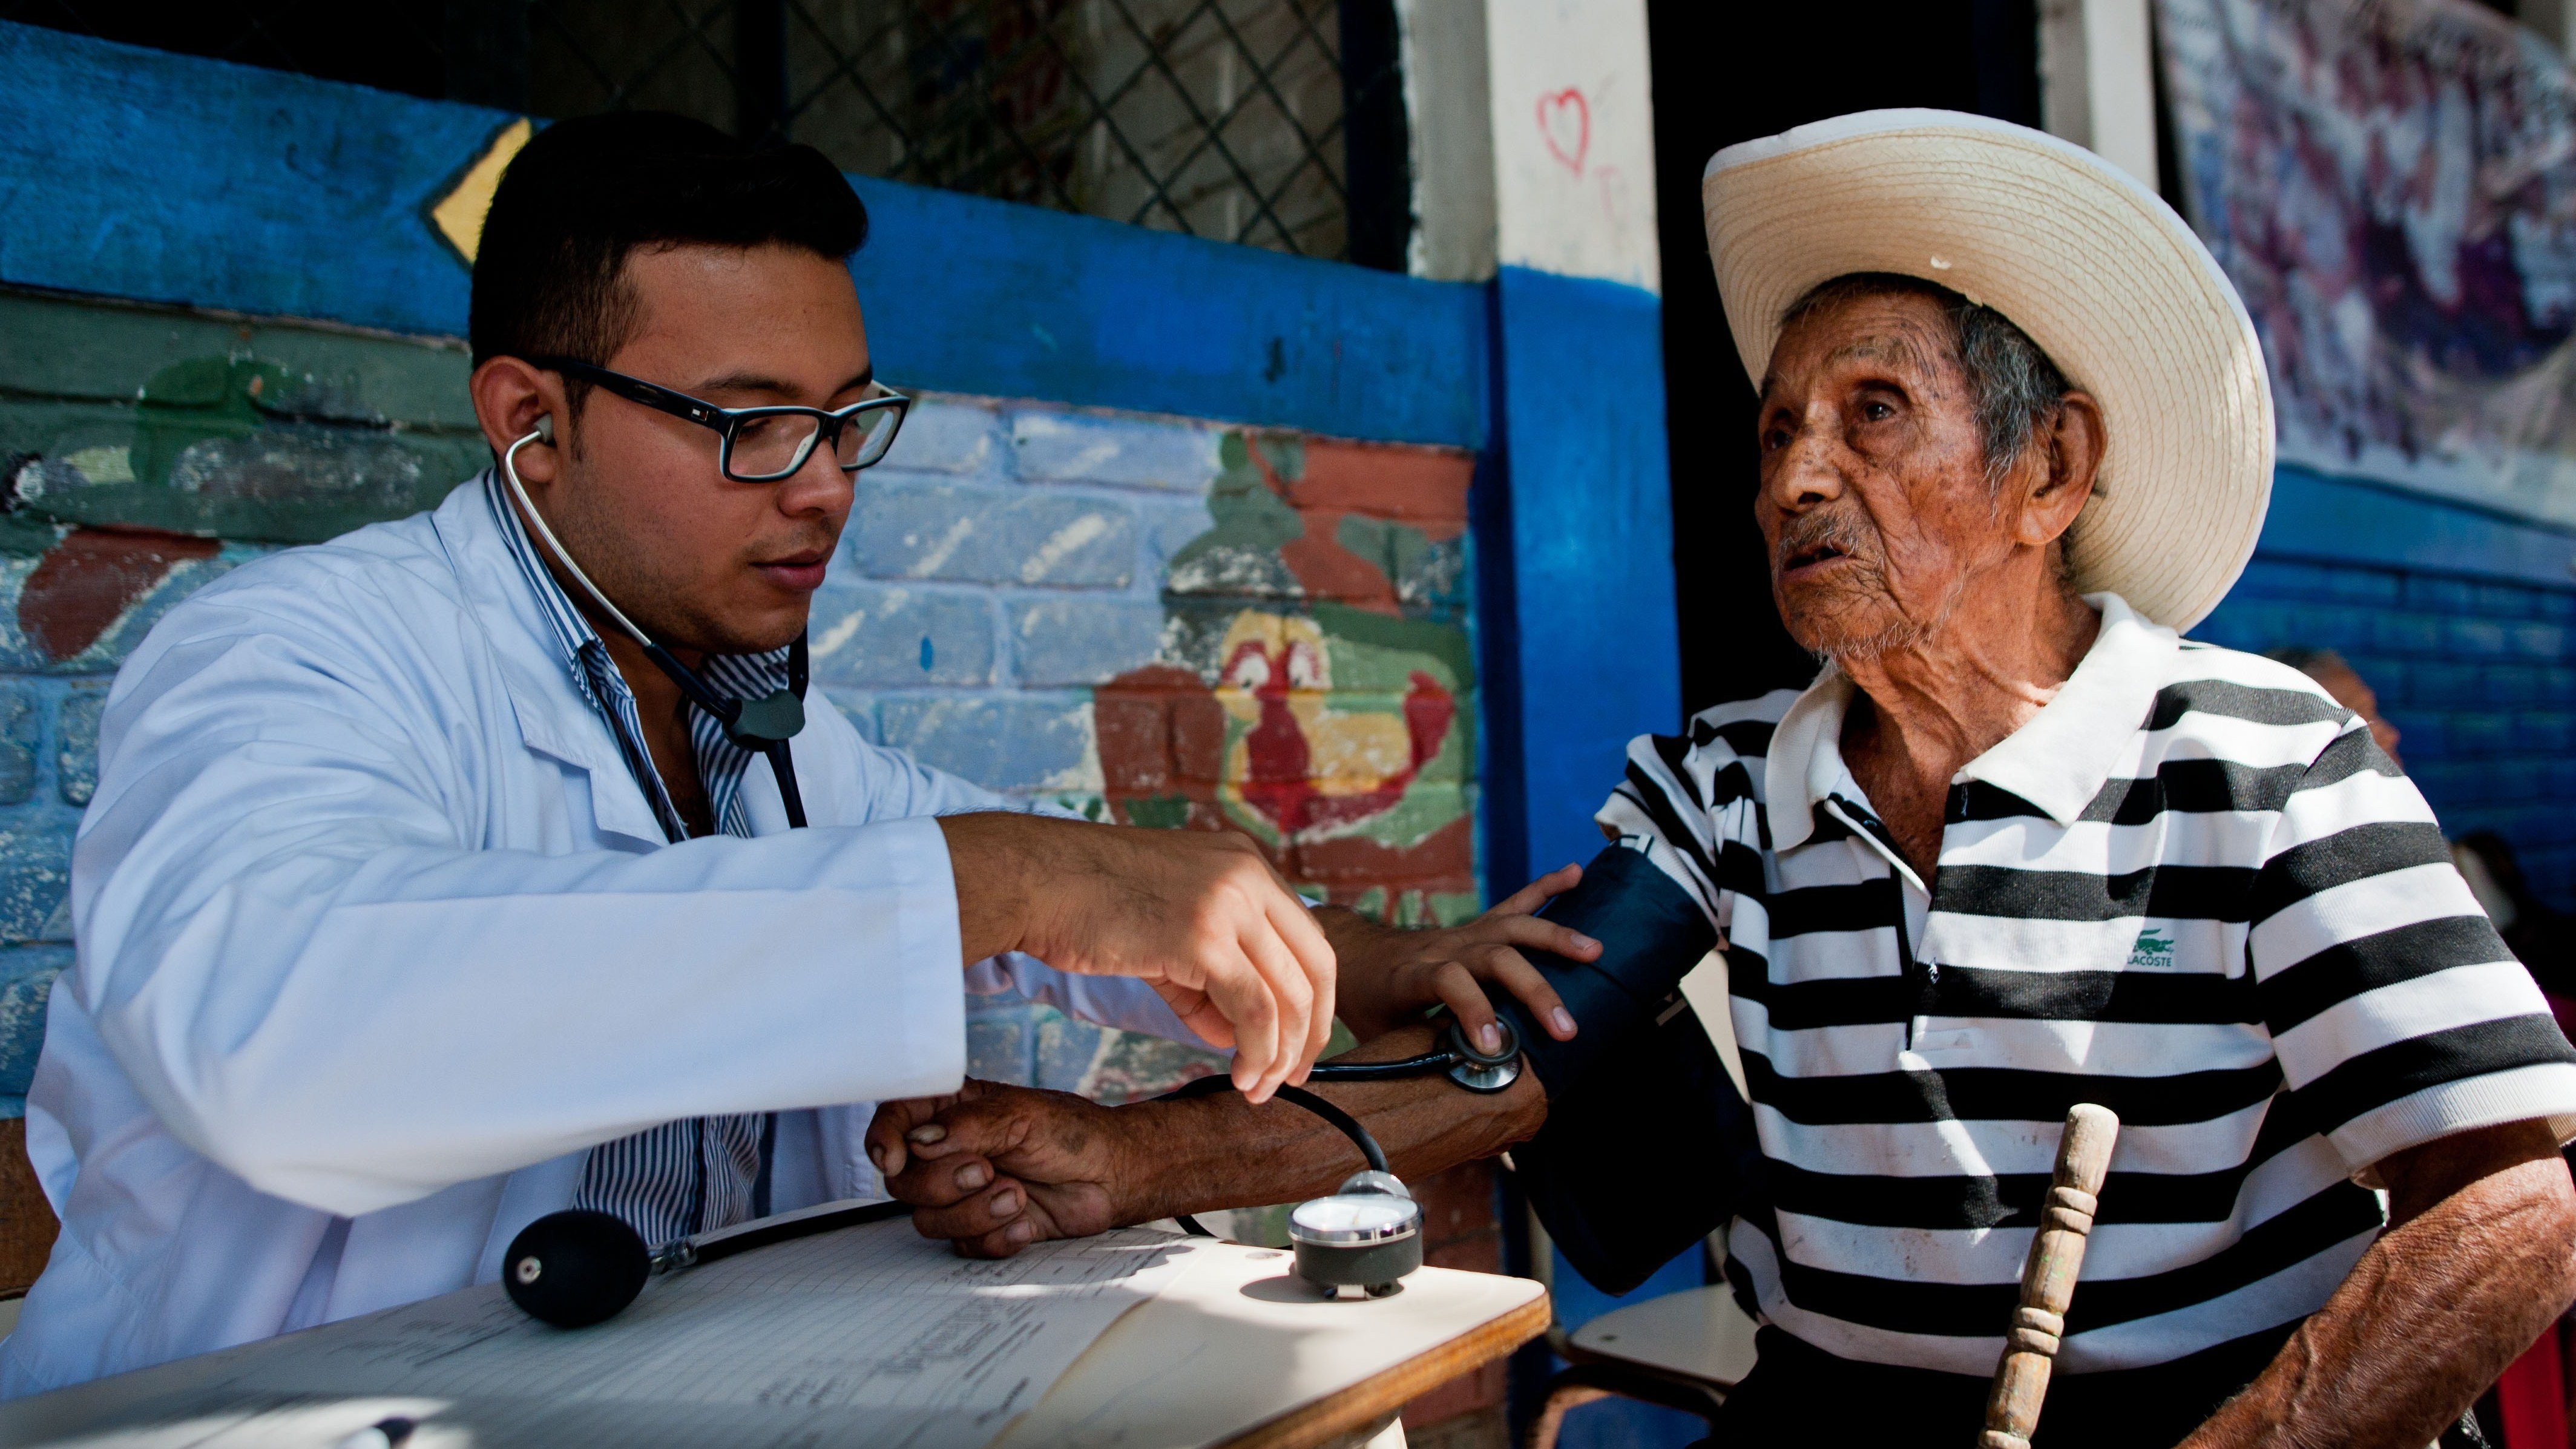 Painful Virus Sweeps Central America, Gains A Toehold In U.S.